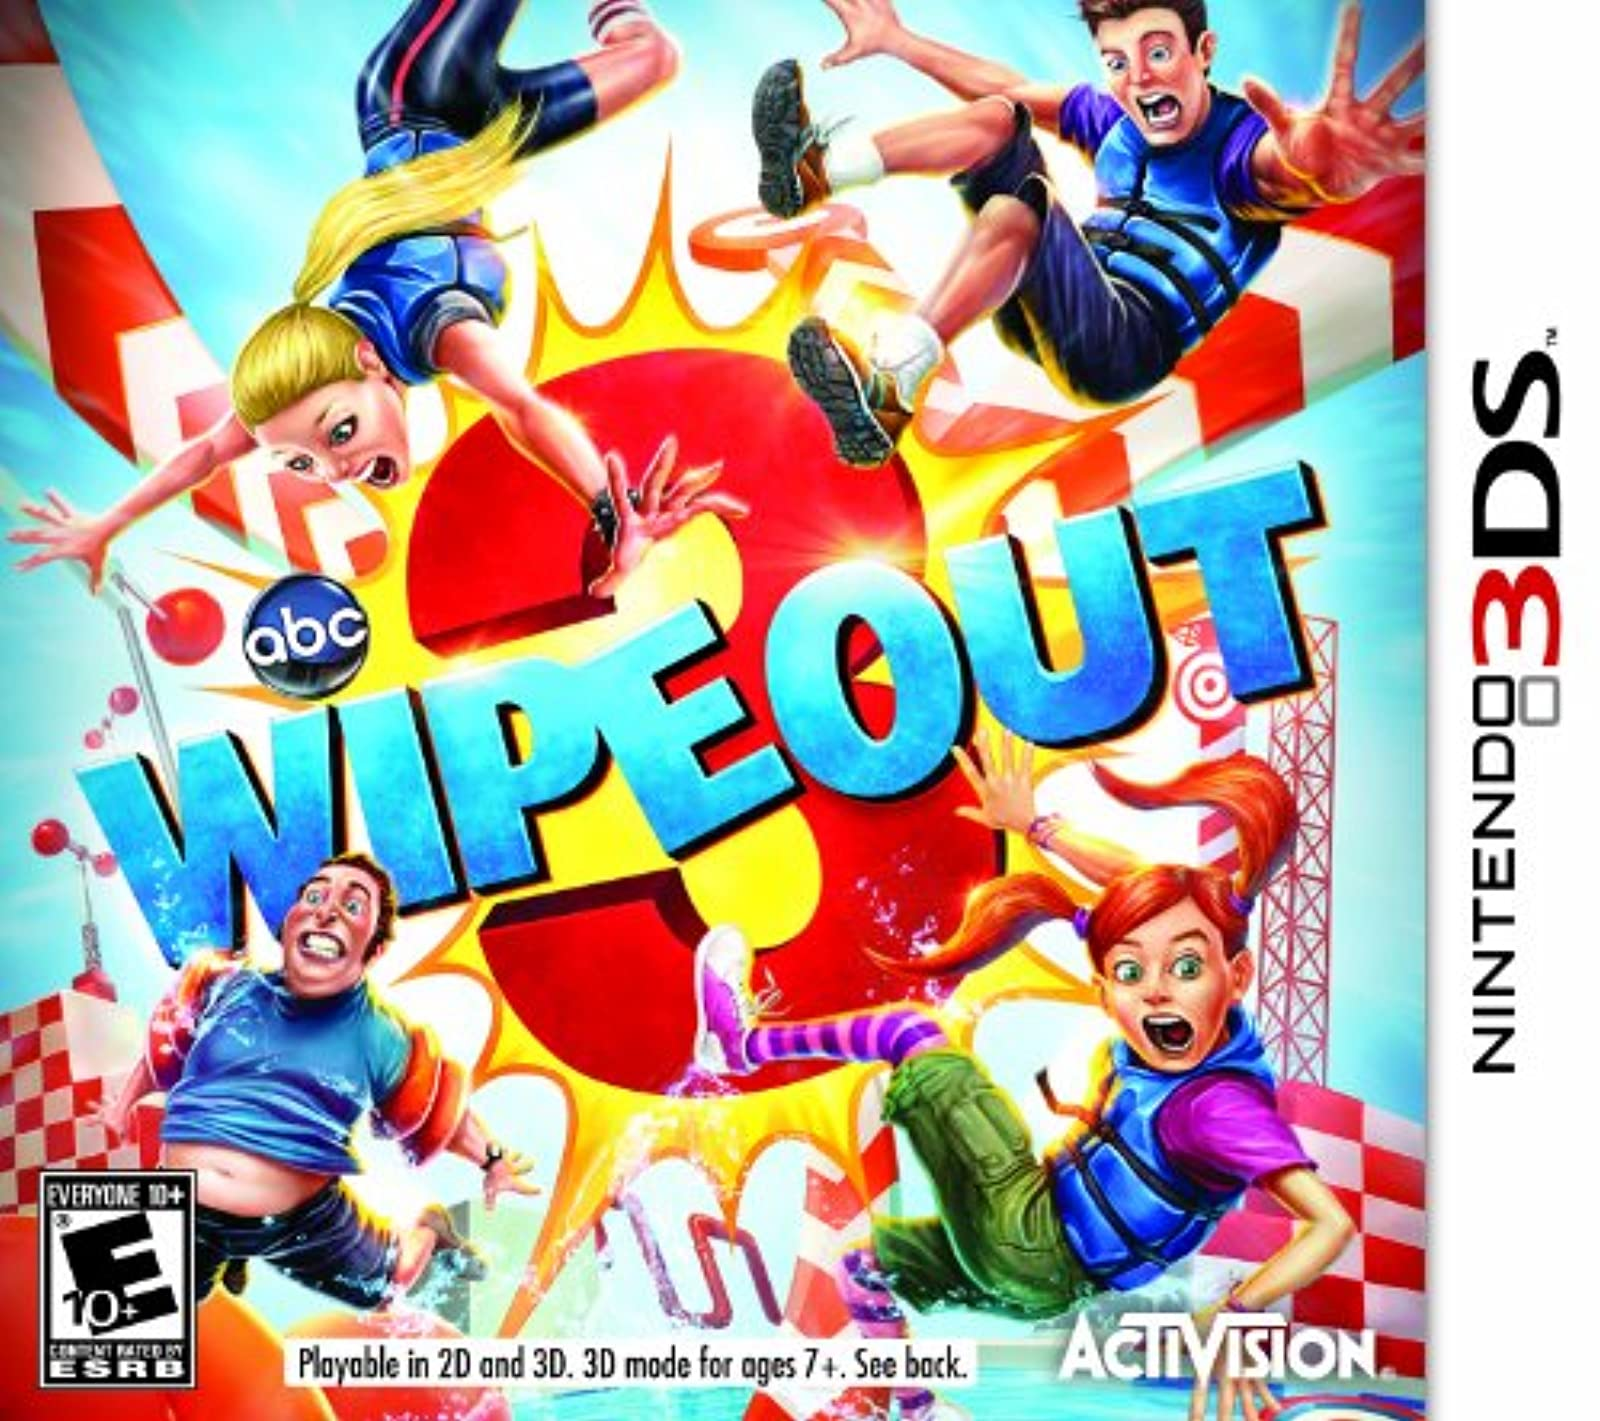 Wipeout 3 Nintendo For 3DS